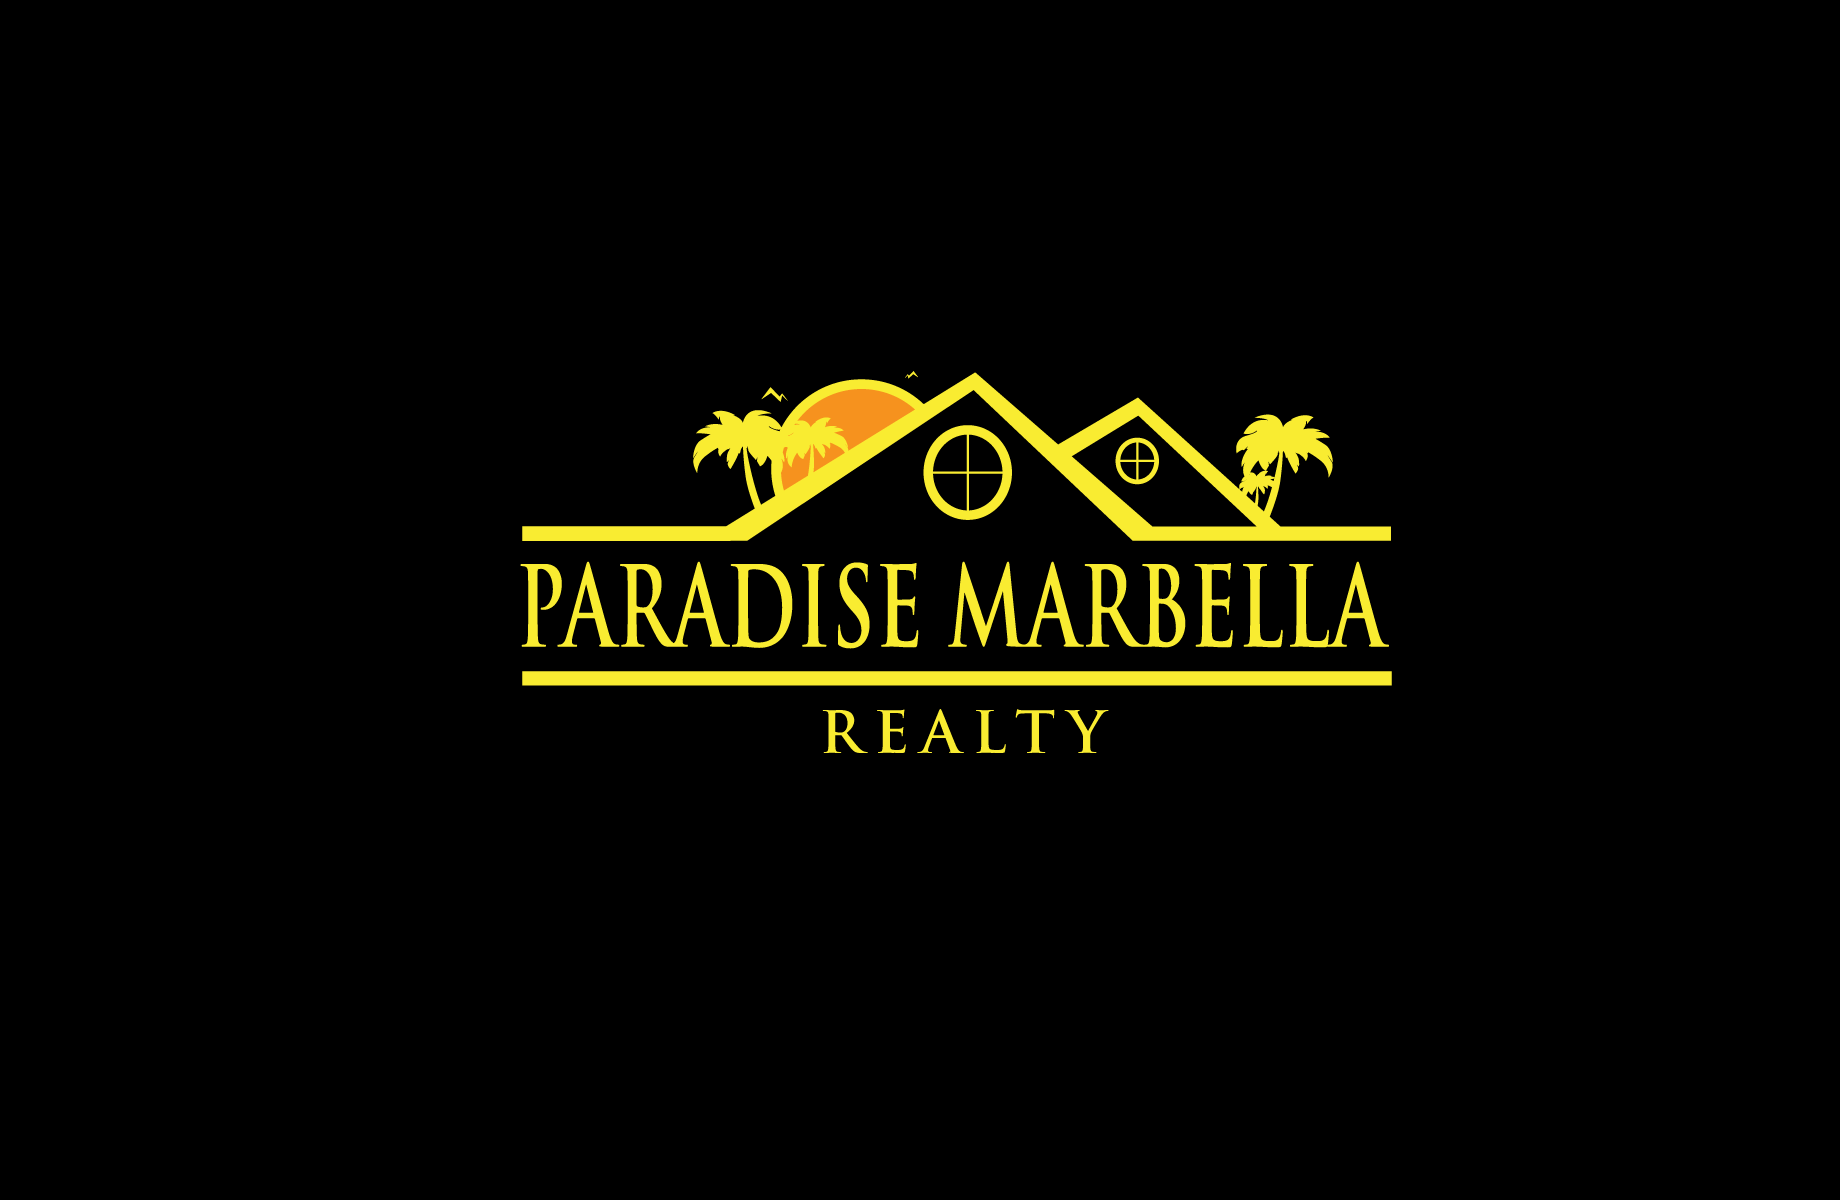 Logo Design by Jan Chua - Entry No. 39 in the Logo Design Contest Captivating Logo Design for Paradise Marbella Realty.